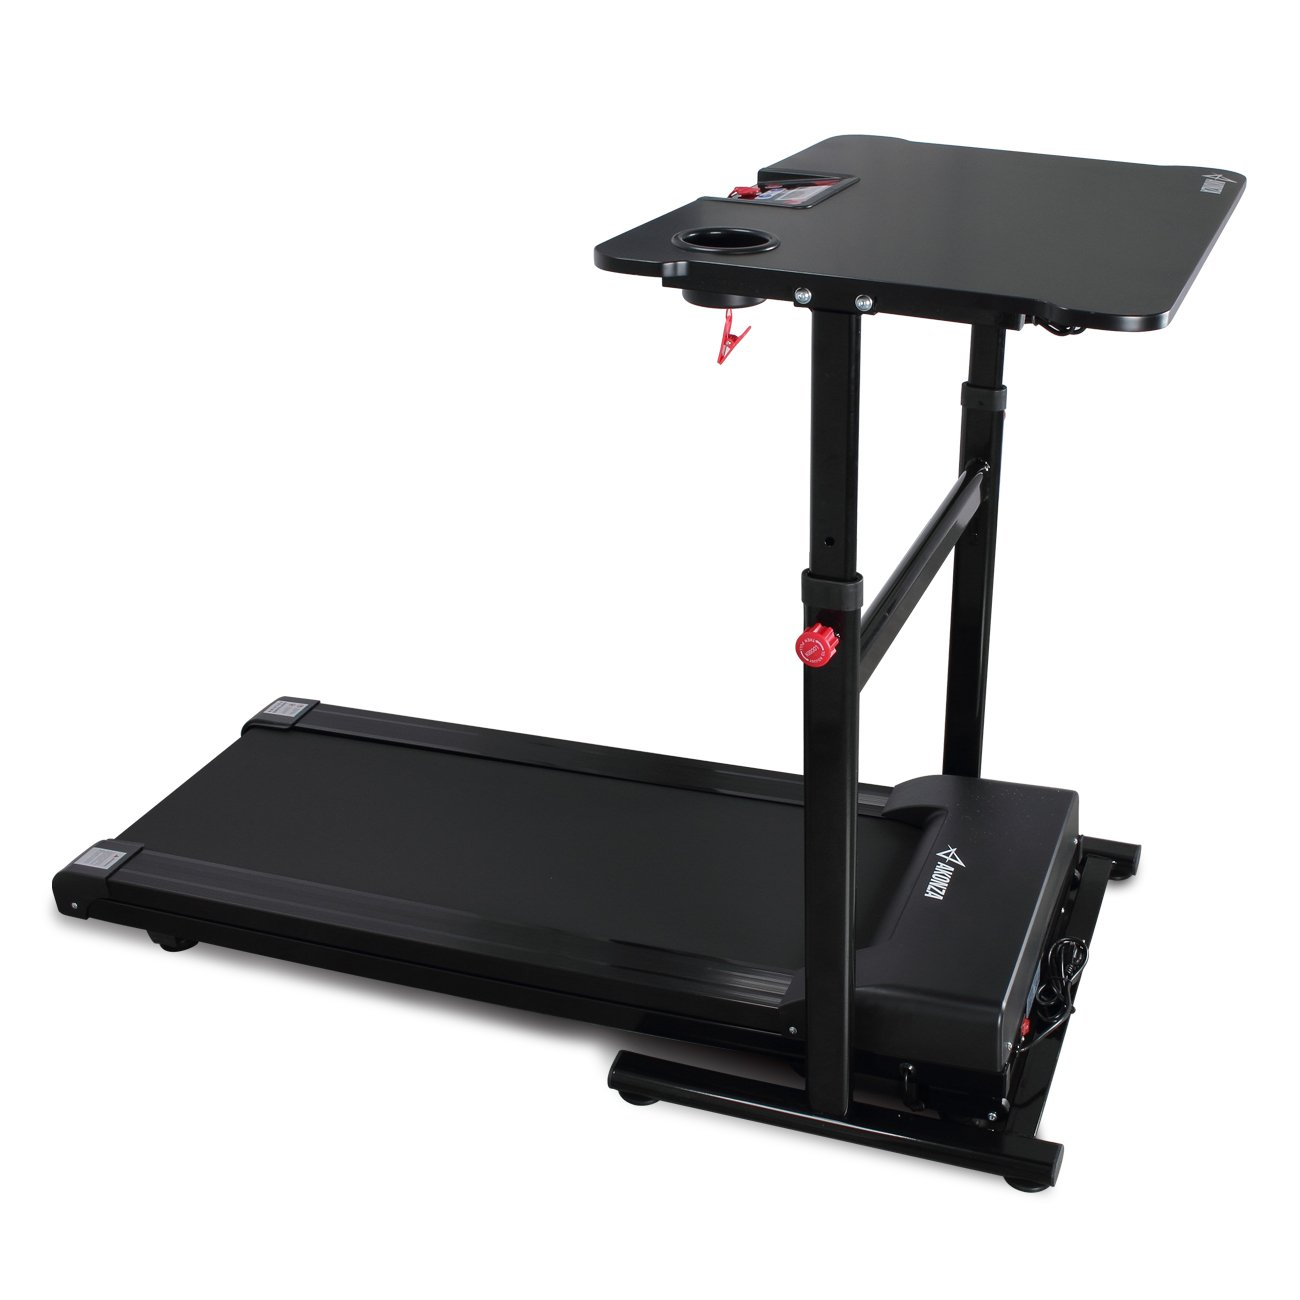 AKONZA 1.25 Peak HP Electric Standing Walking Treadmill Desk Workstation w/Tabletop Adjustable Height for Home & Office by AKONZA